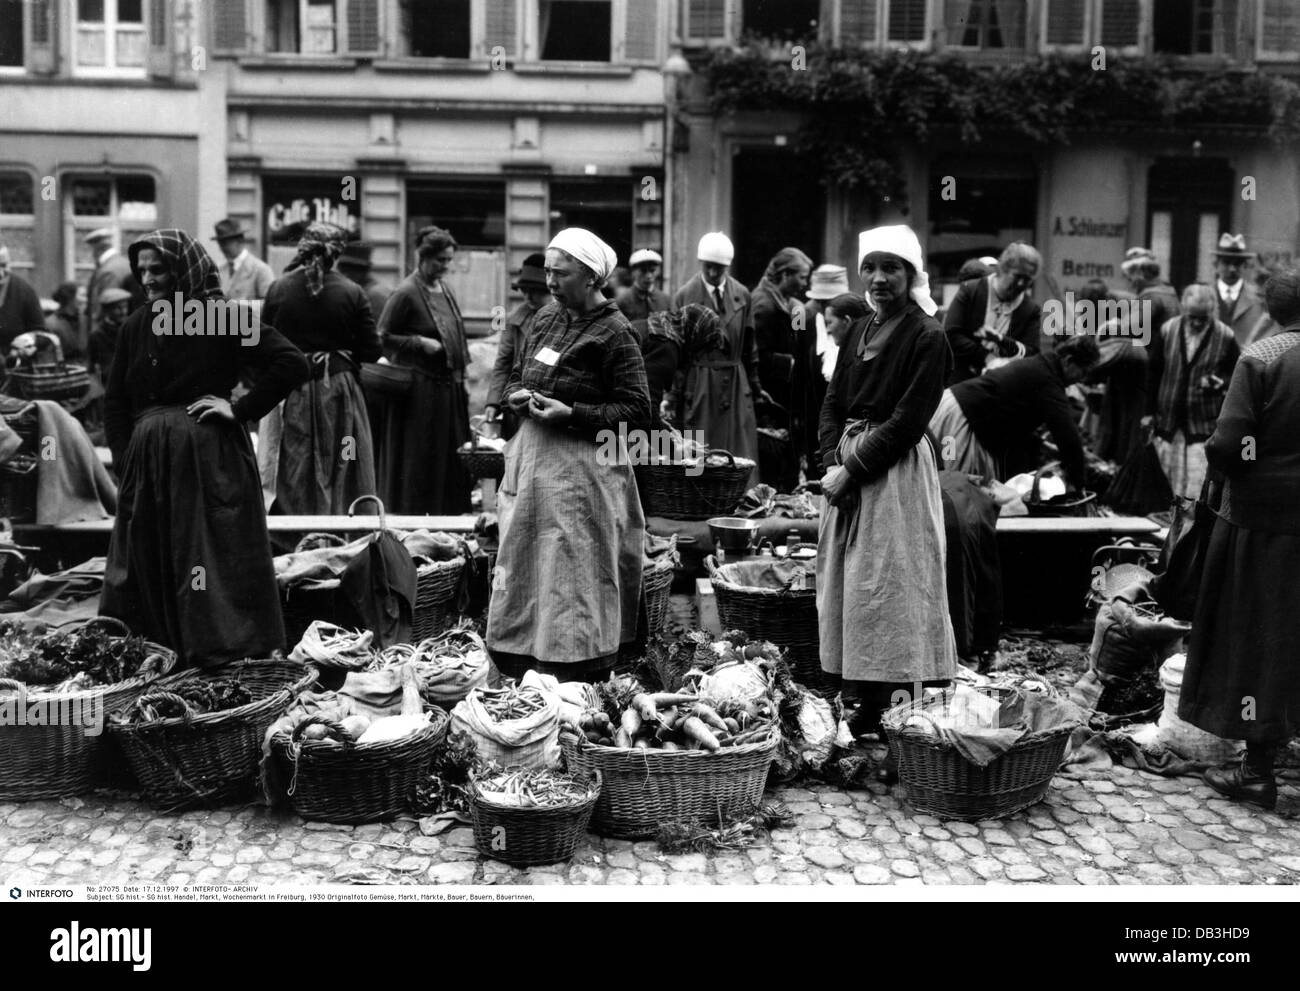 trade, market, weekly market at Freiburg, Germany, 1930, Additional-Rights-Clearences-NA Stock Photo